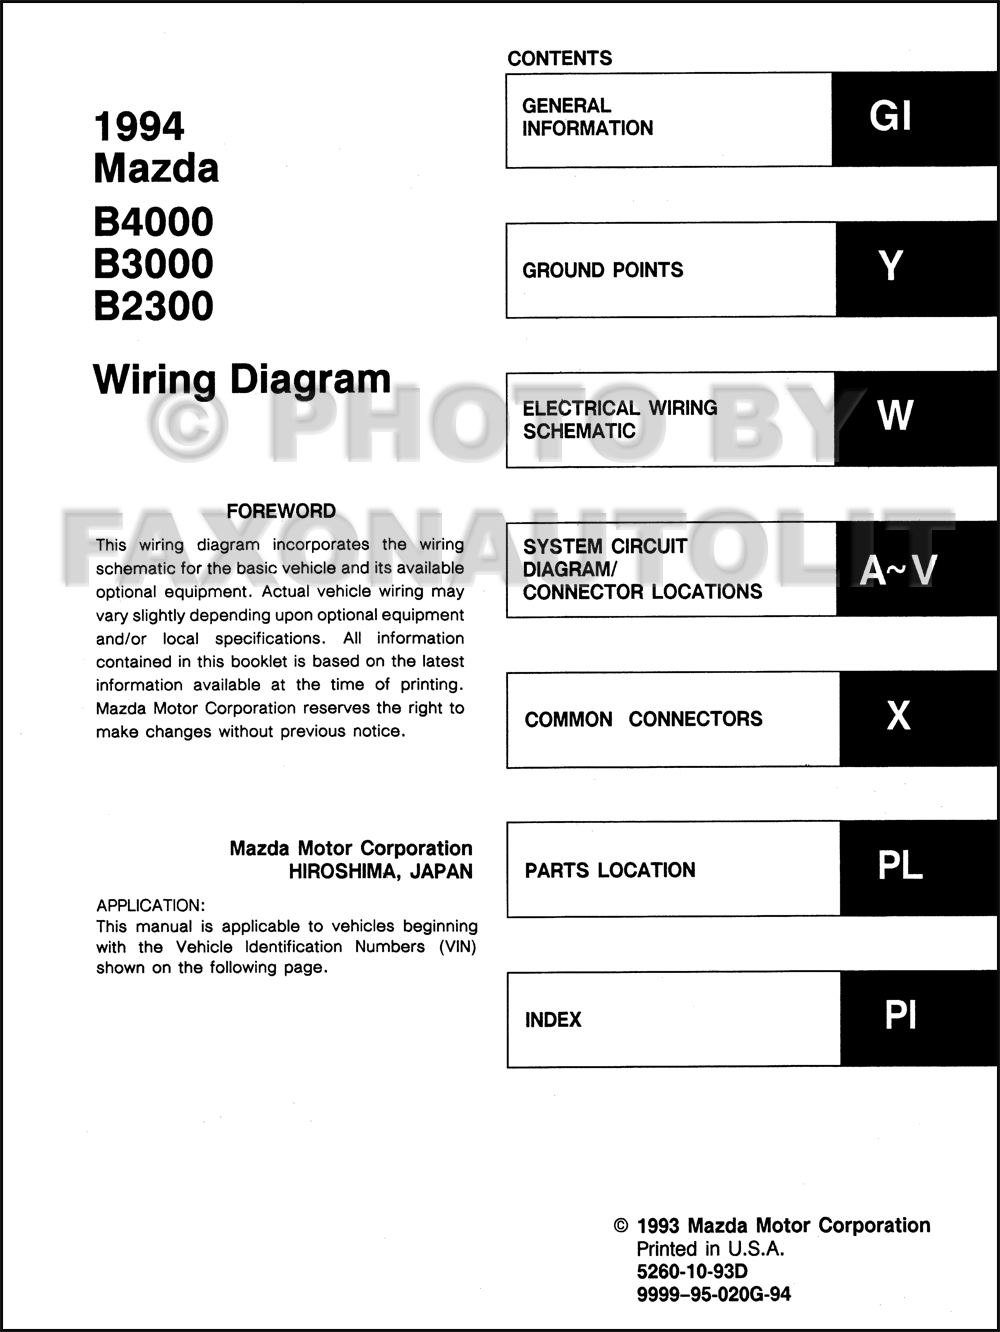 1994 miata wiring diagram 1994 image wiring diagram 1996 mazda miata wiring diagram 1996 image wiring on 1994 miata wiring diagram